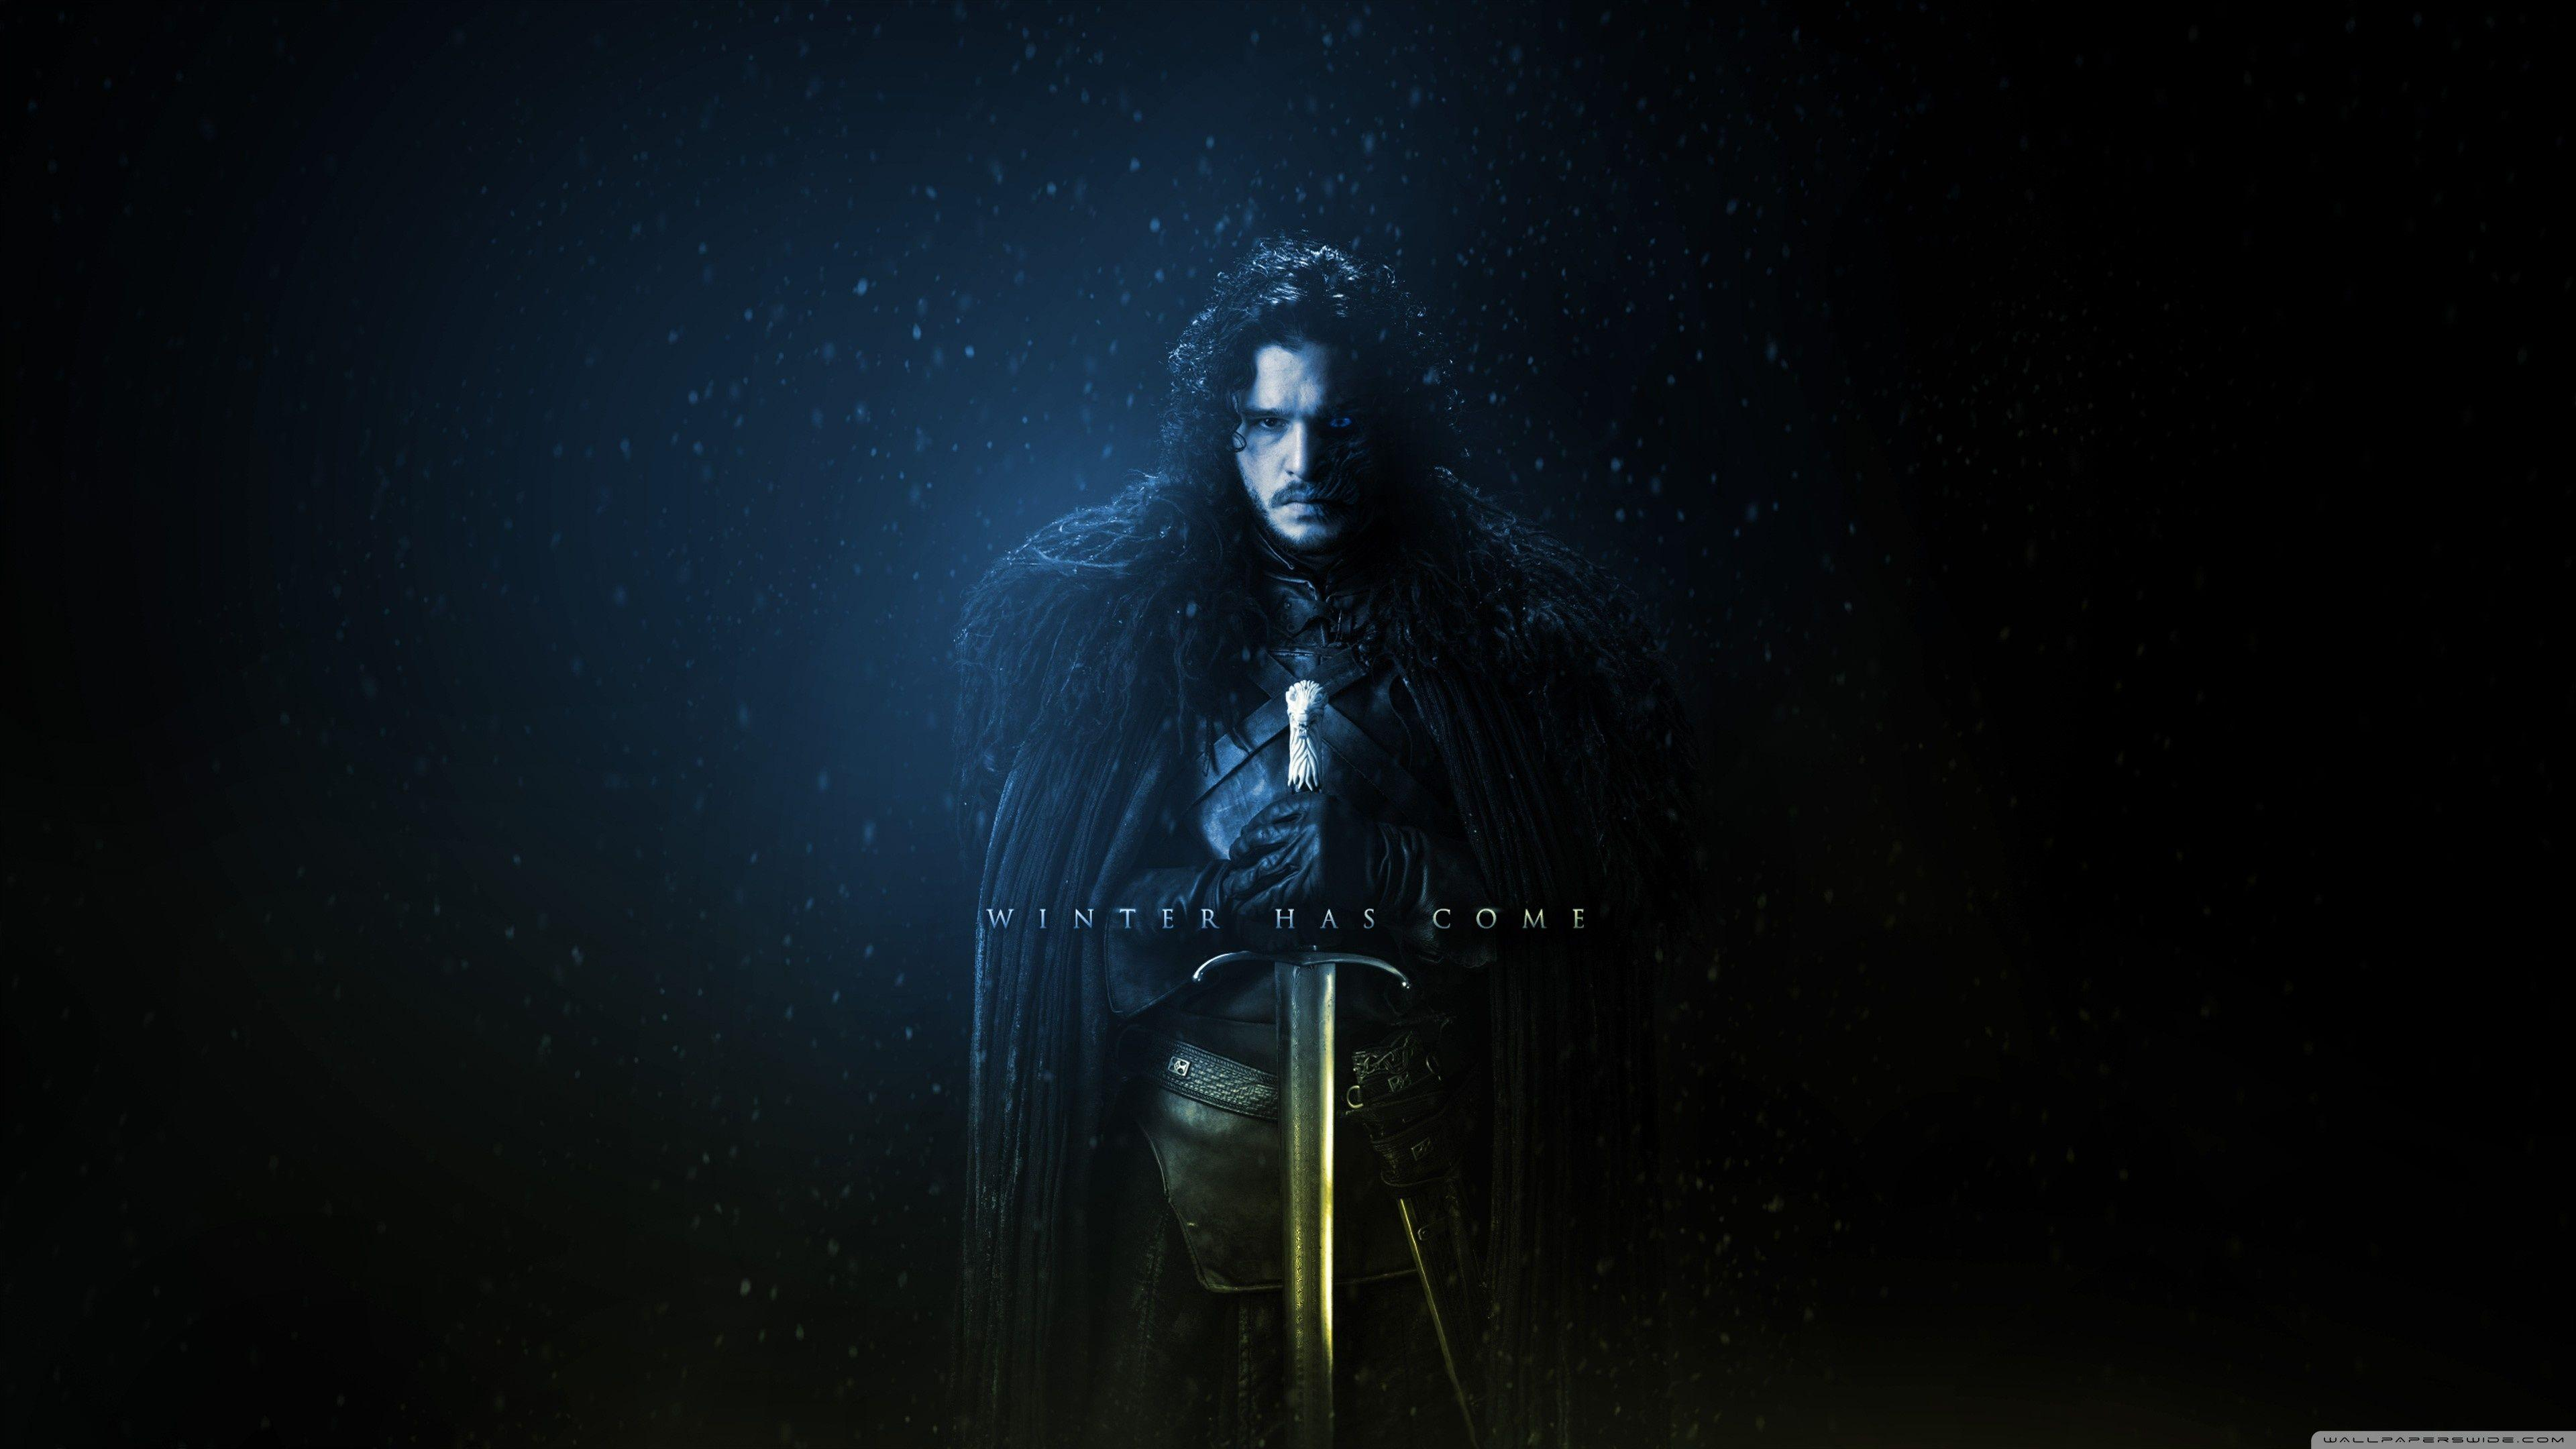 Game Of Thrones PC Wallpapers - Wallpaper Cave